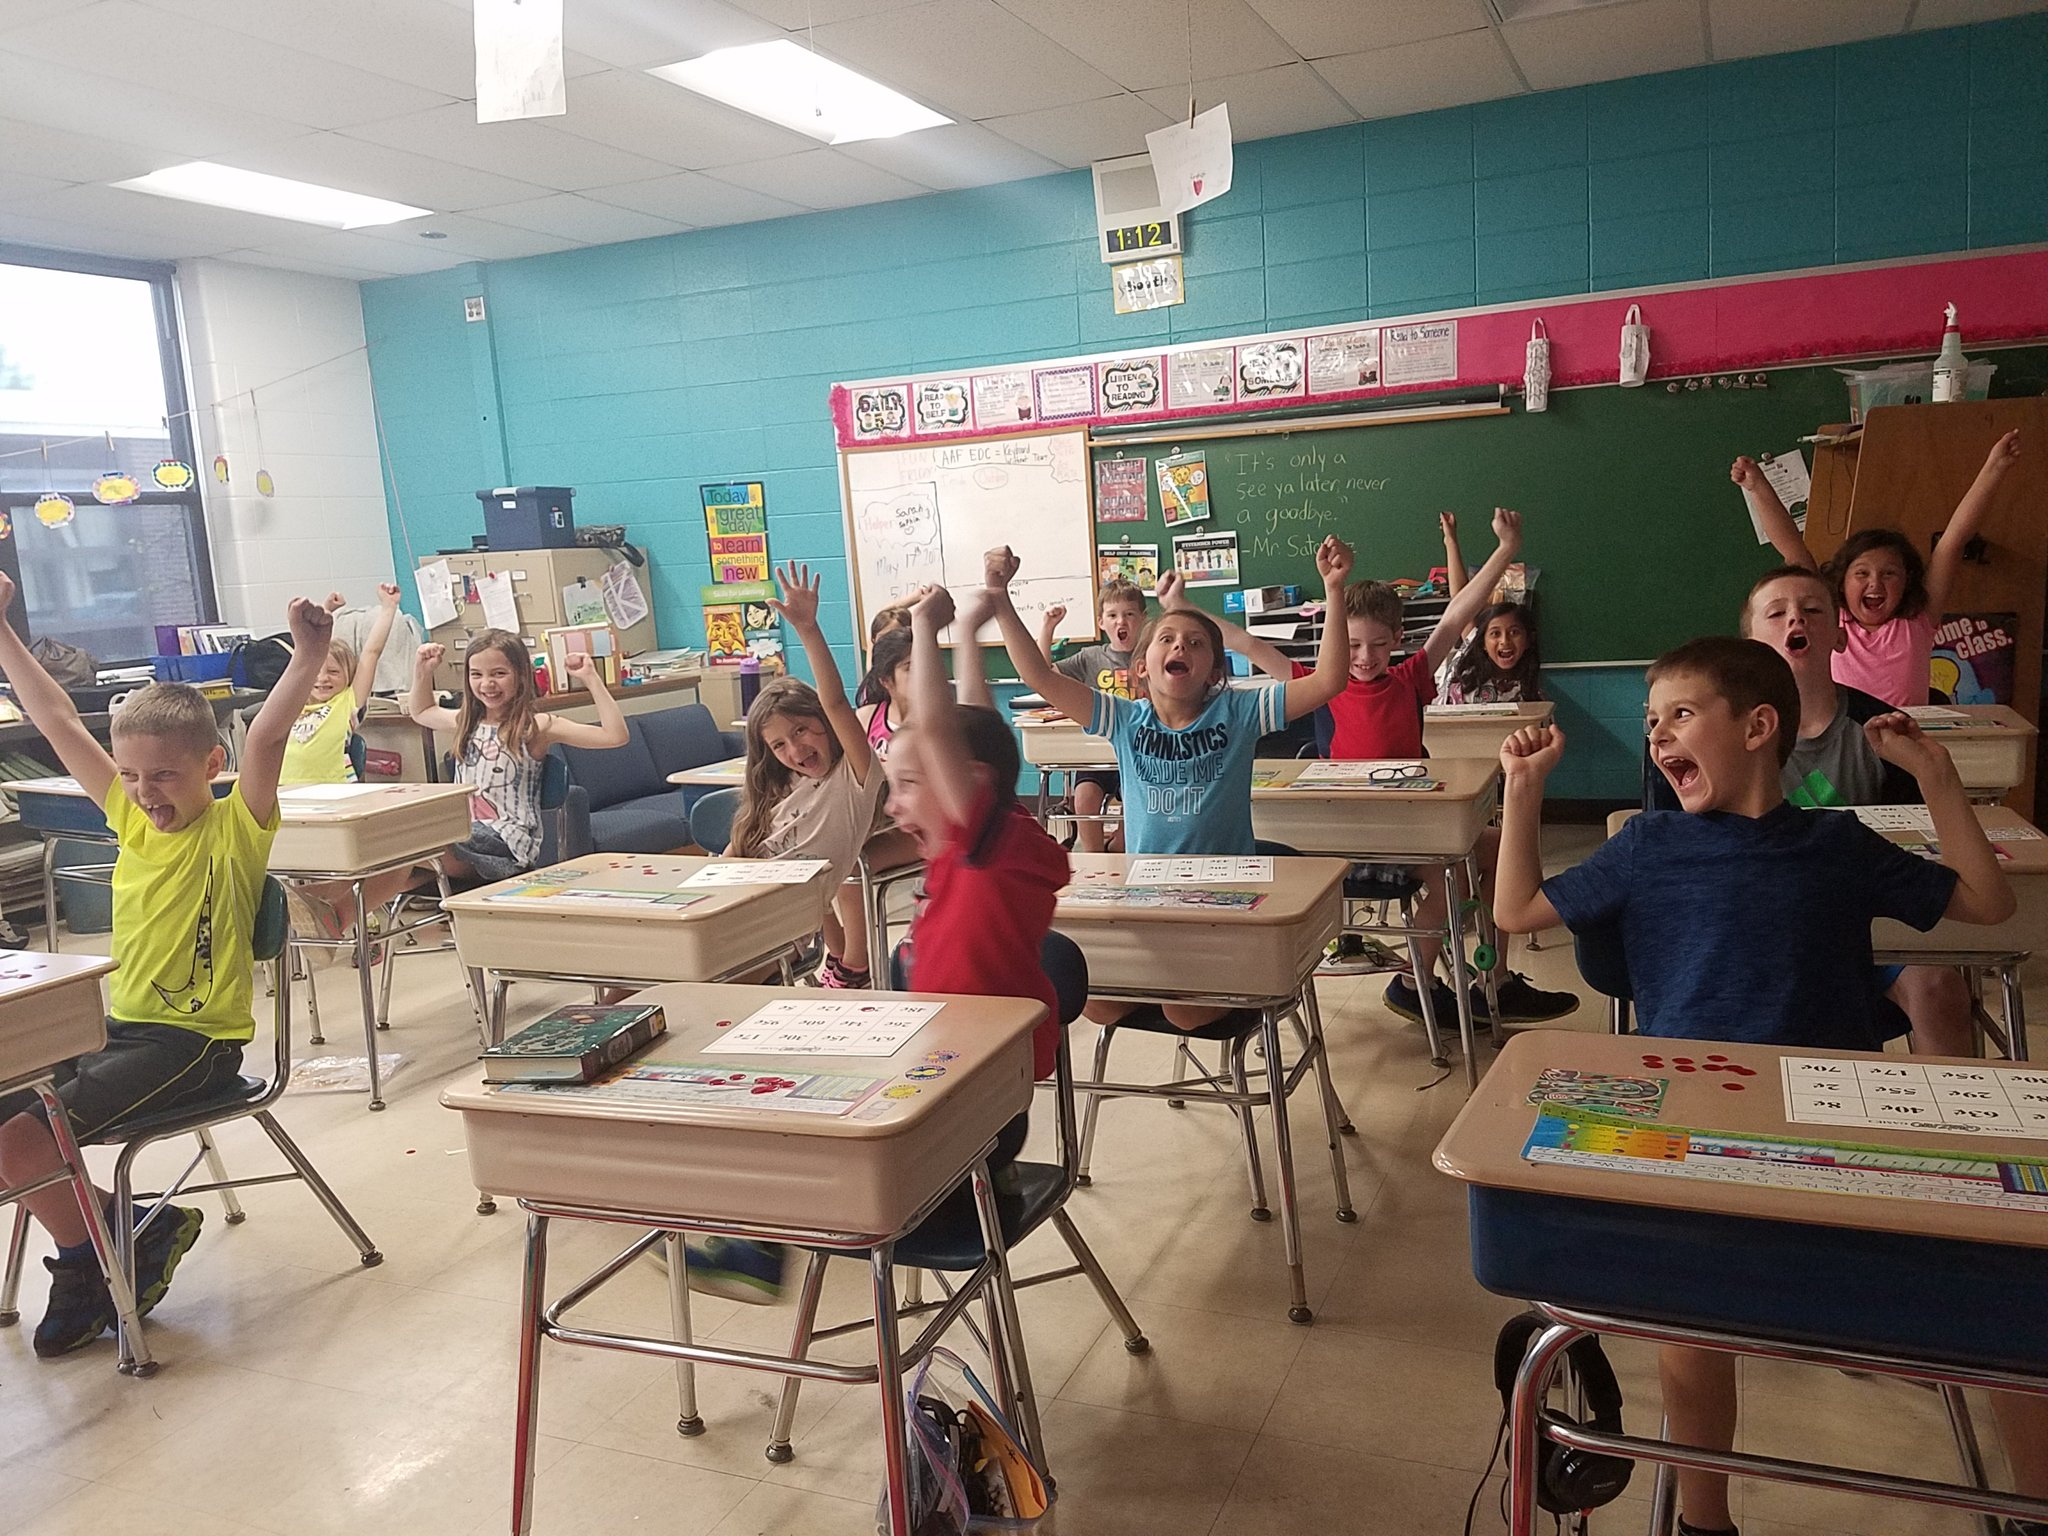 M is for math games... Quizmo! #iginspires https://t.co/ywimPFsZx9